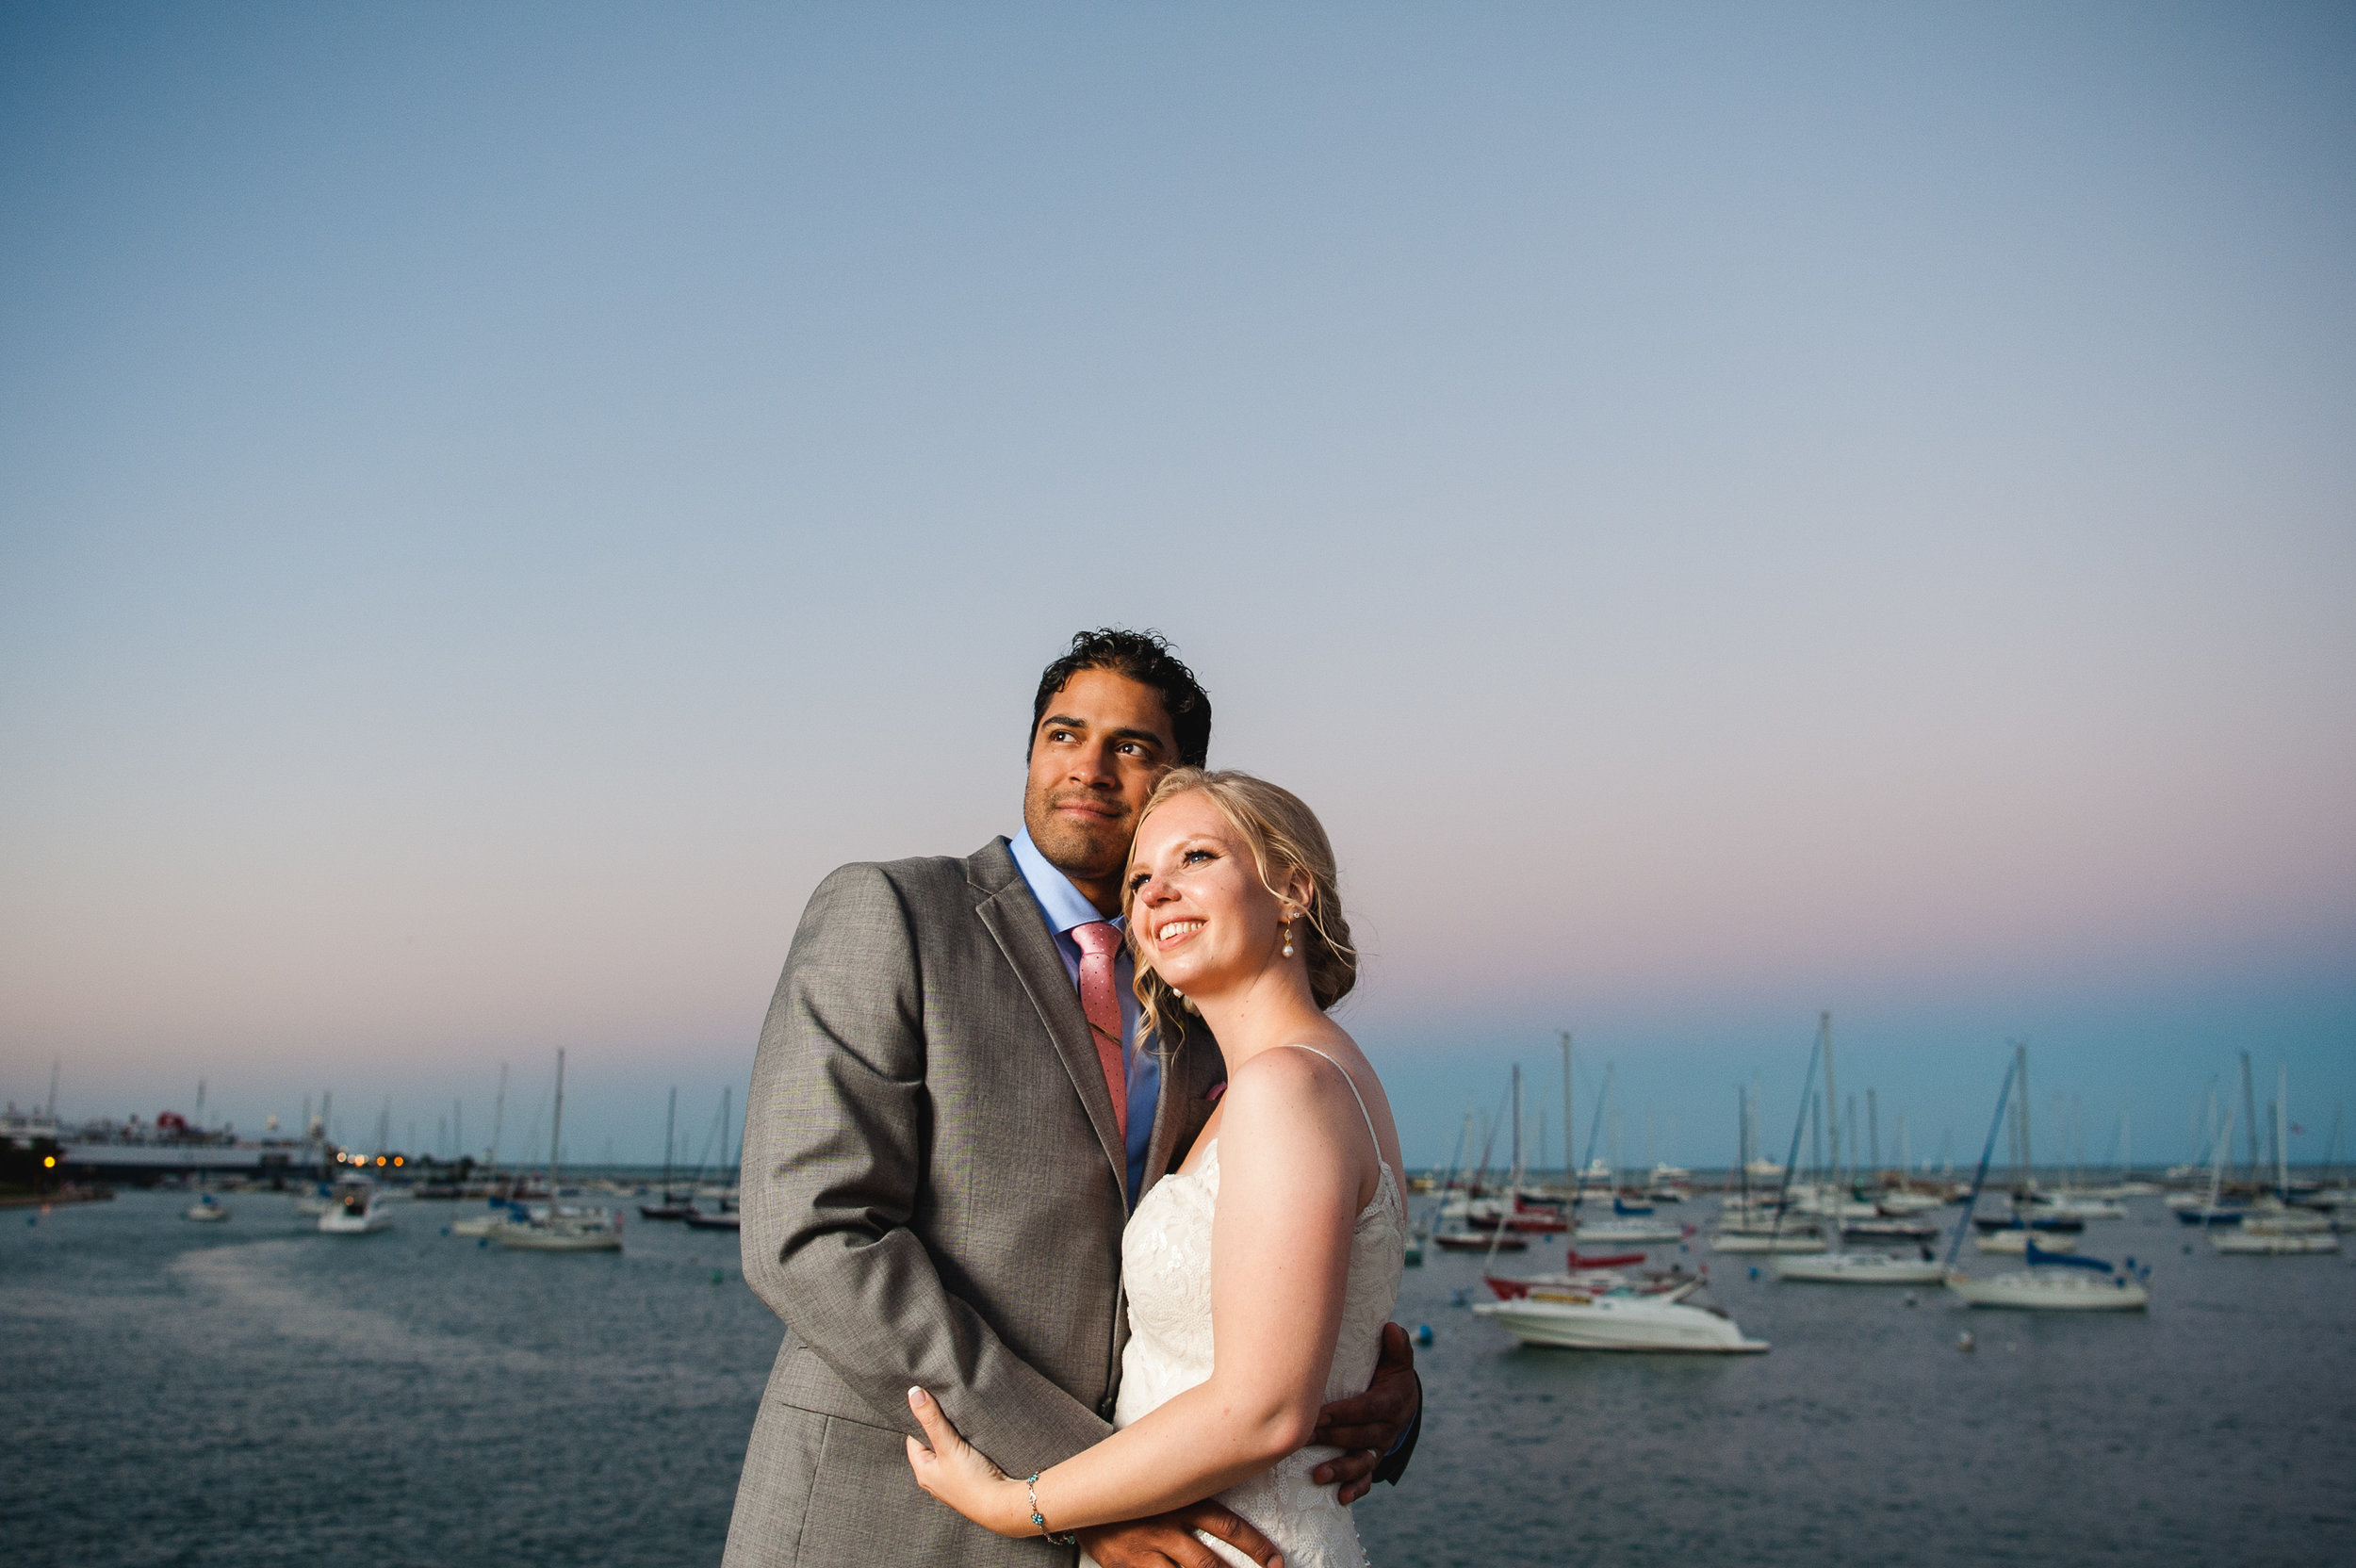 ckp-Chicago-Yacht-Club-Wedding-0127.jpg